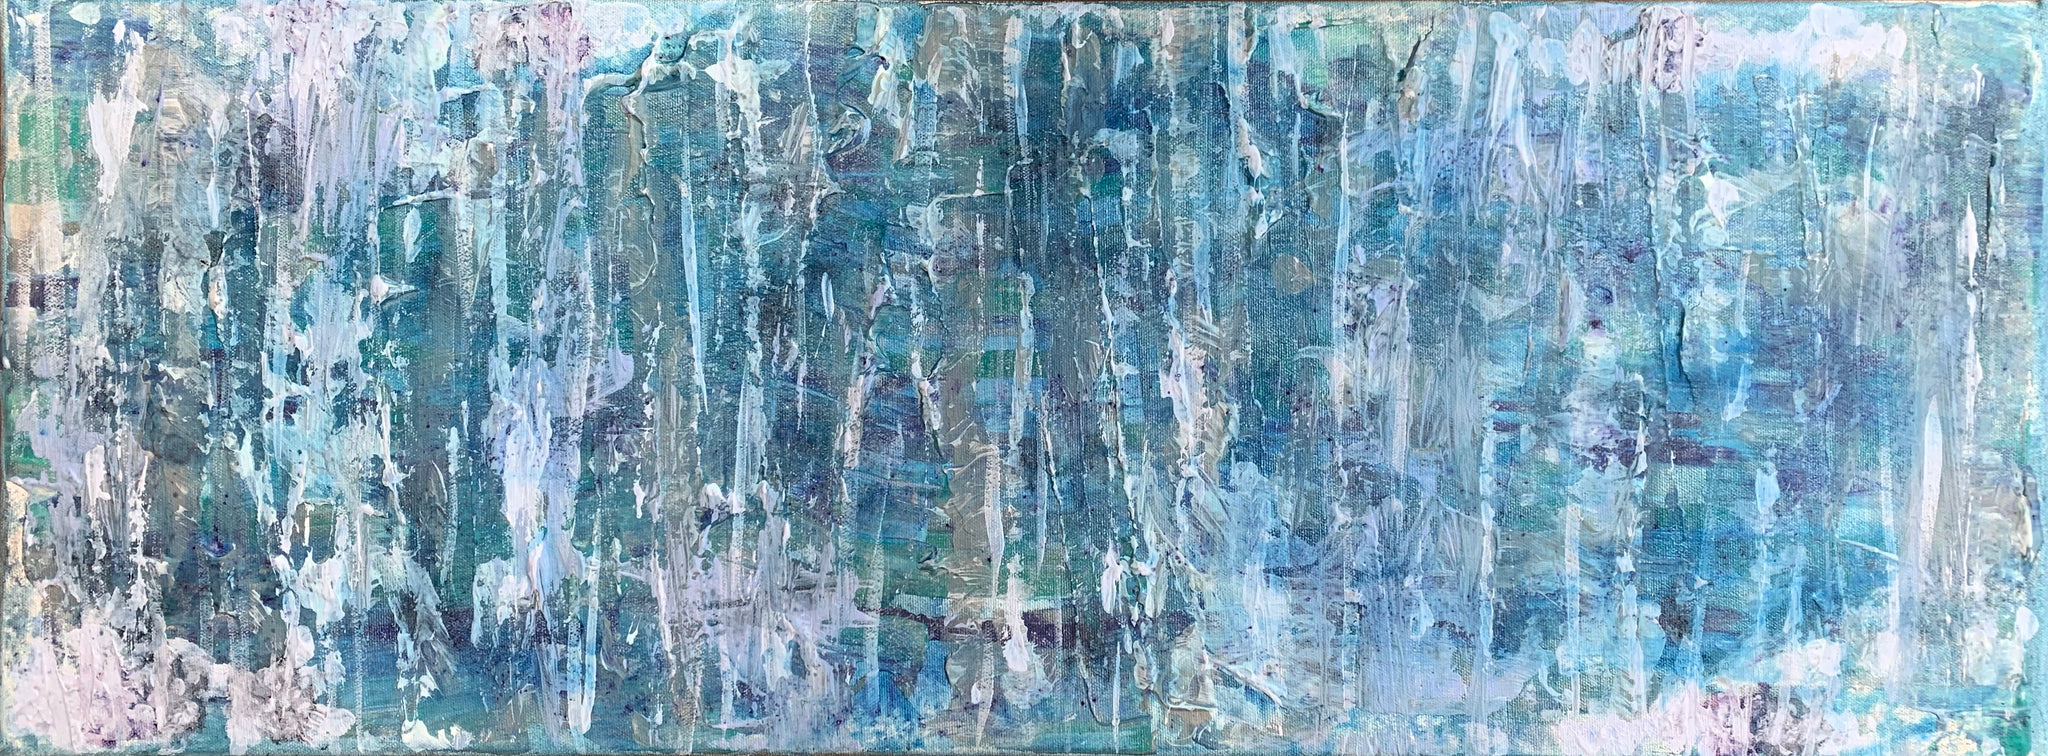 Original Mixed Media Artwork on Canvas 'Storms Coming'